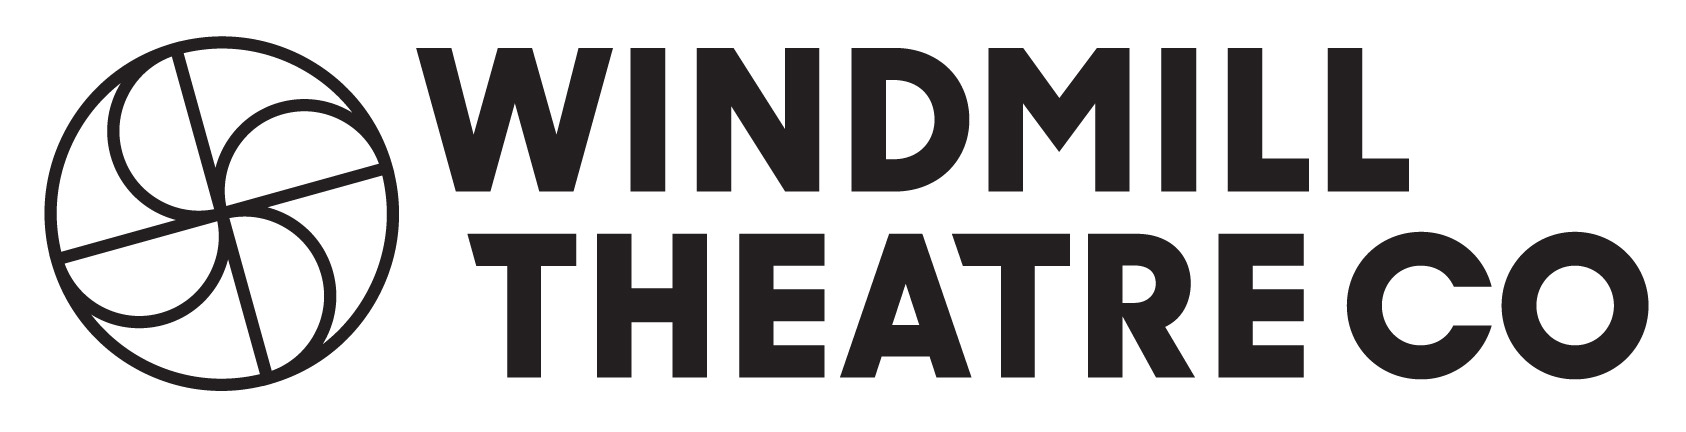 Windmill Theatre Co Logo